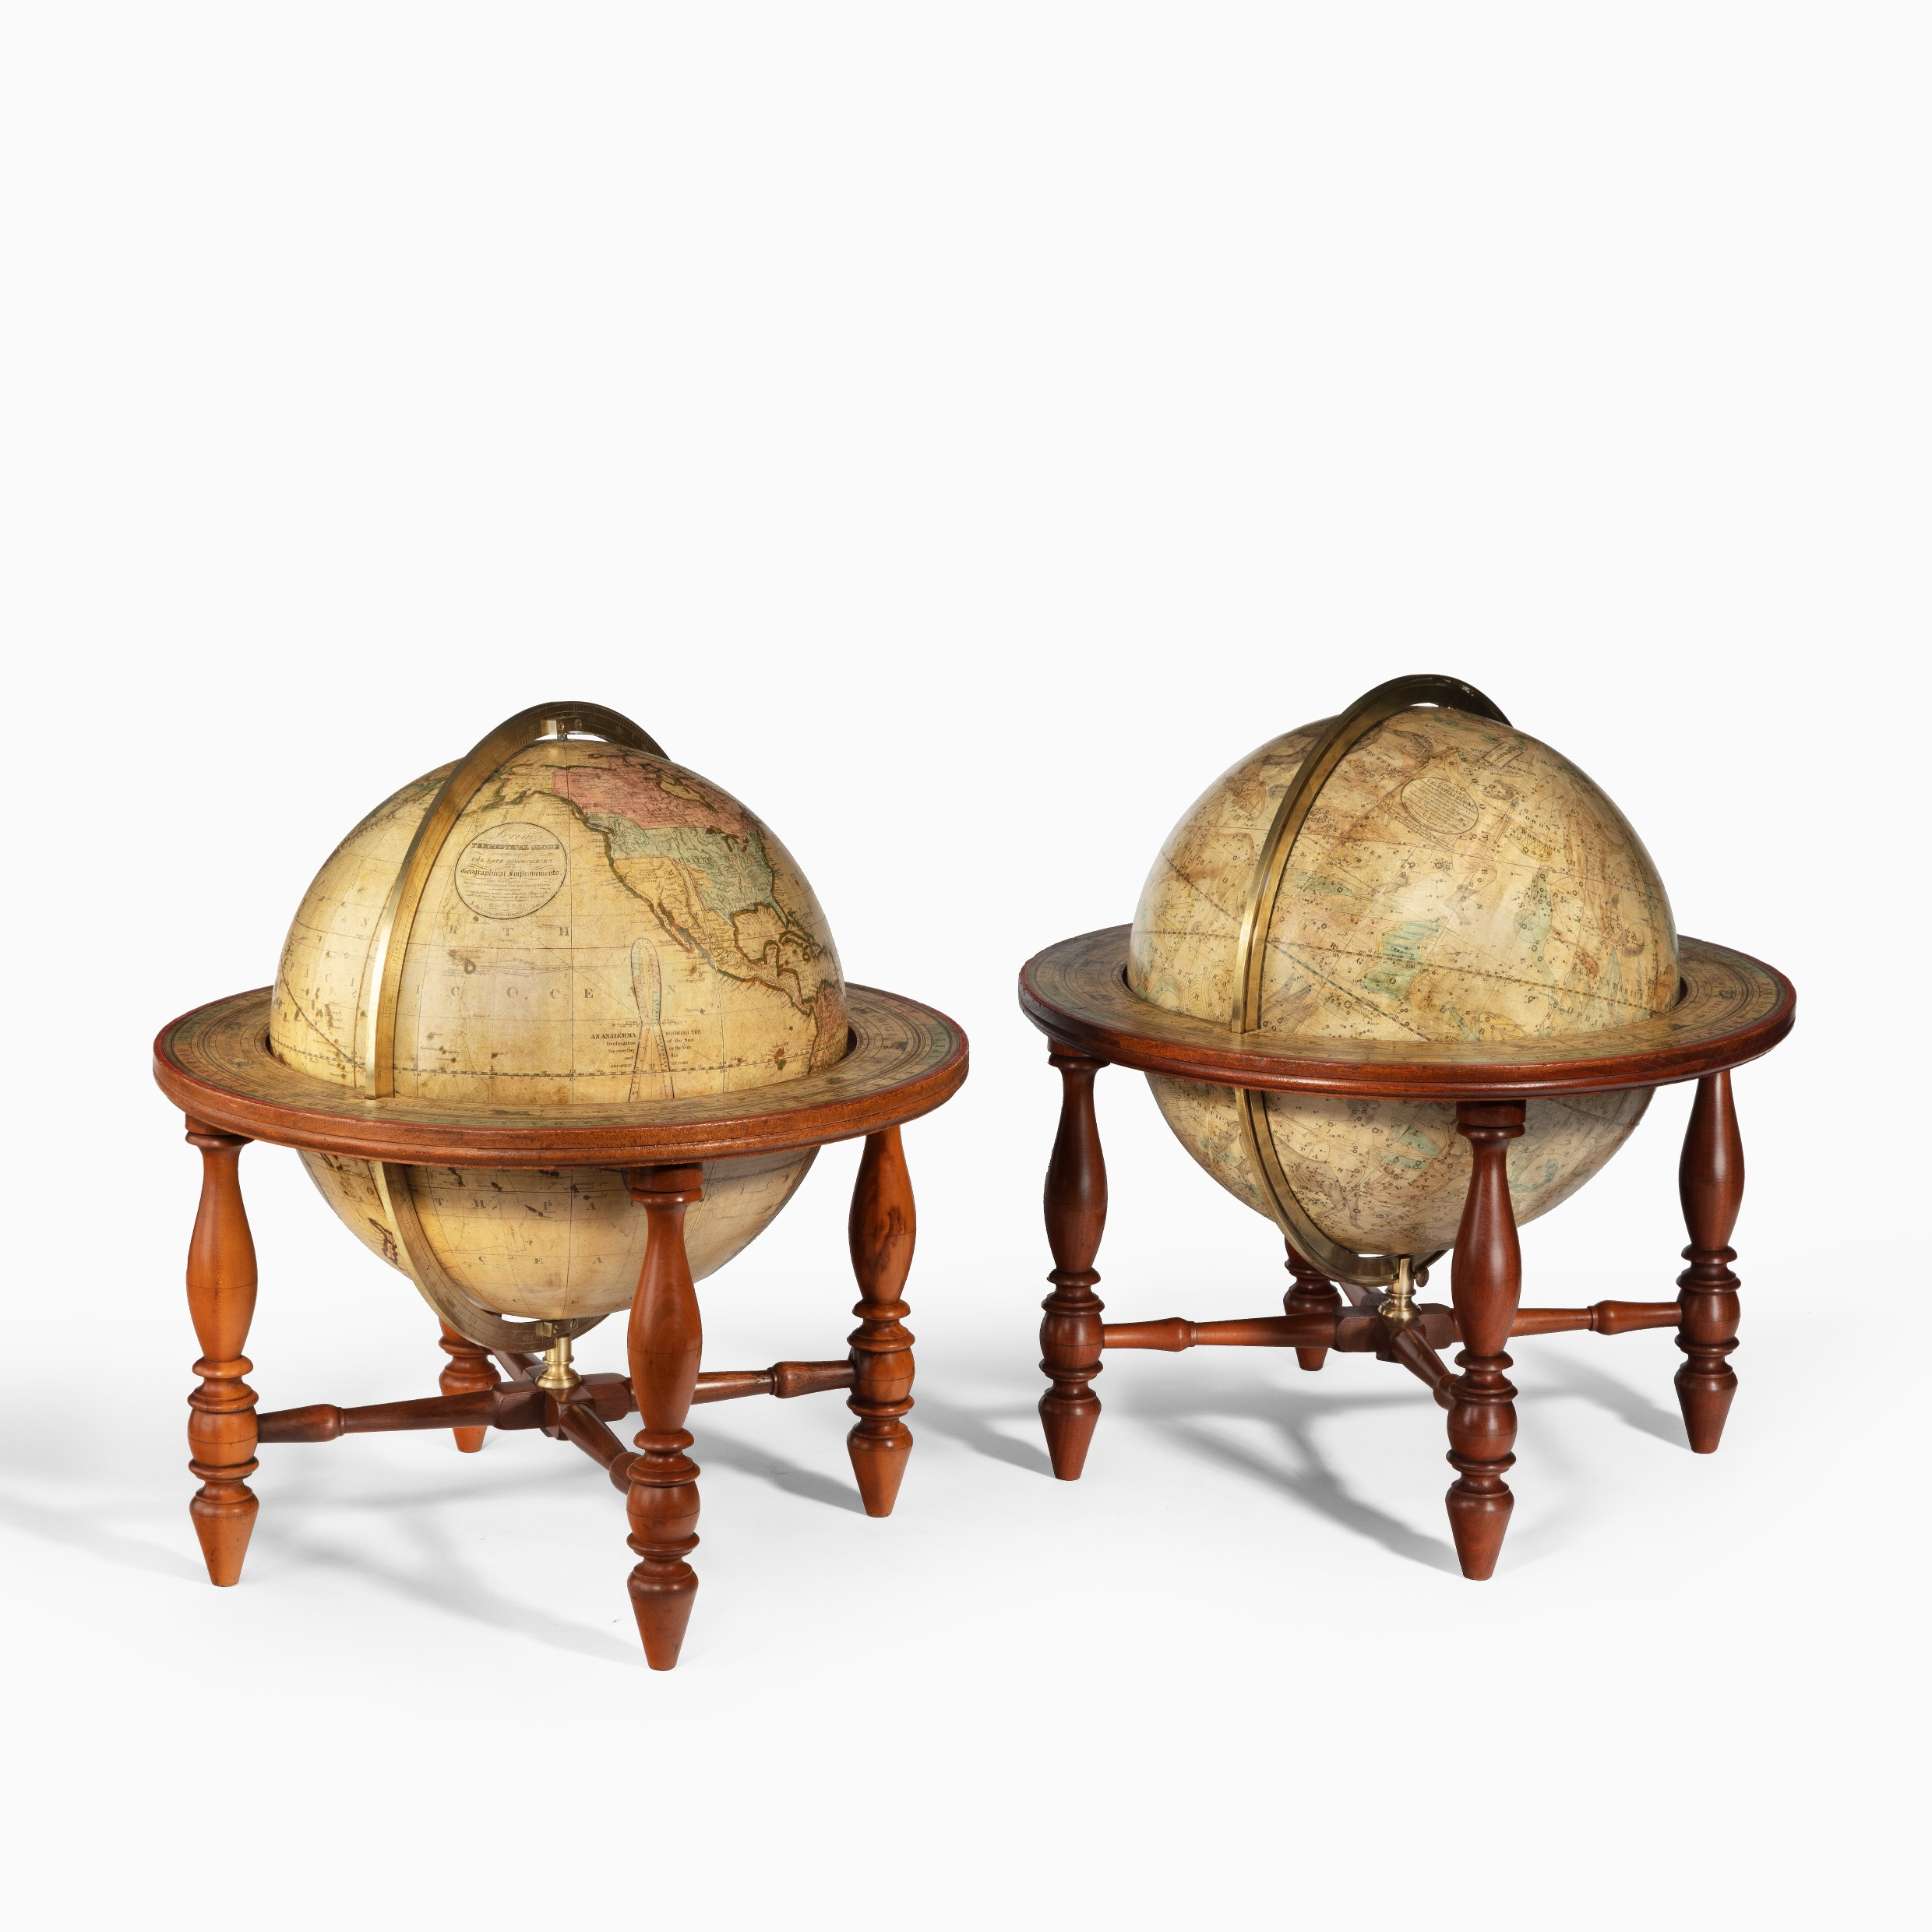 A pair of 12 inch table globes by Josiah Loring, dated 1844 and 1841